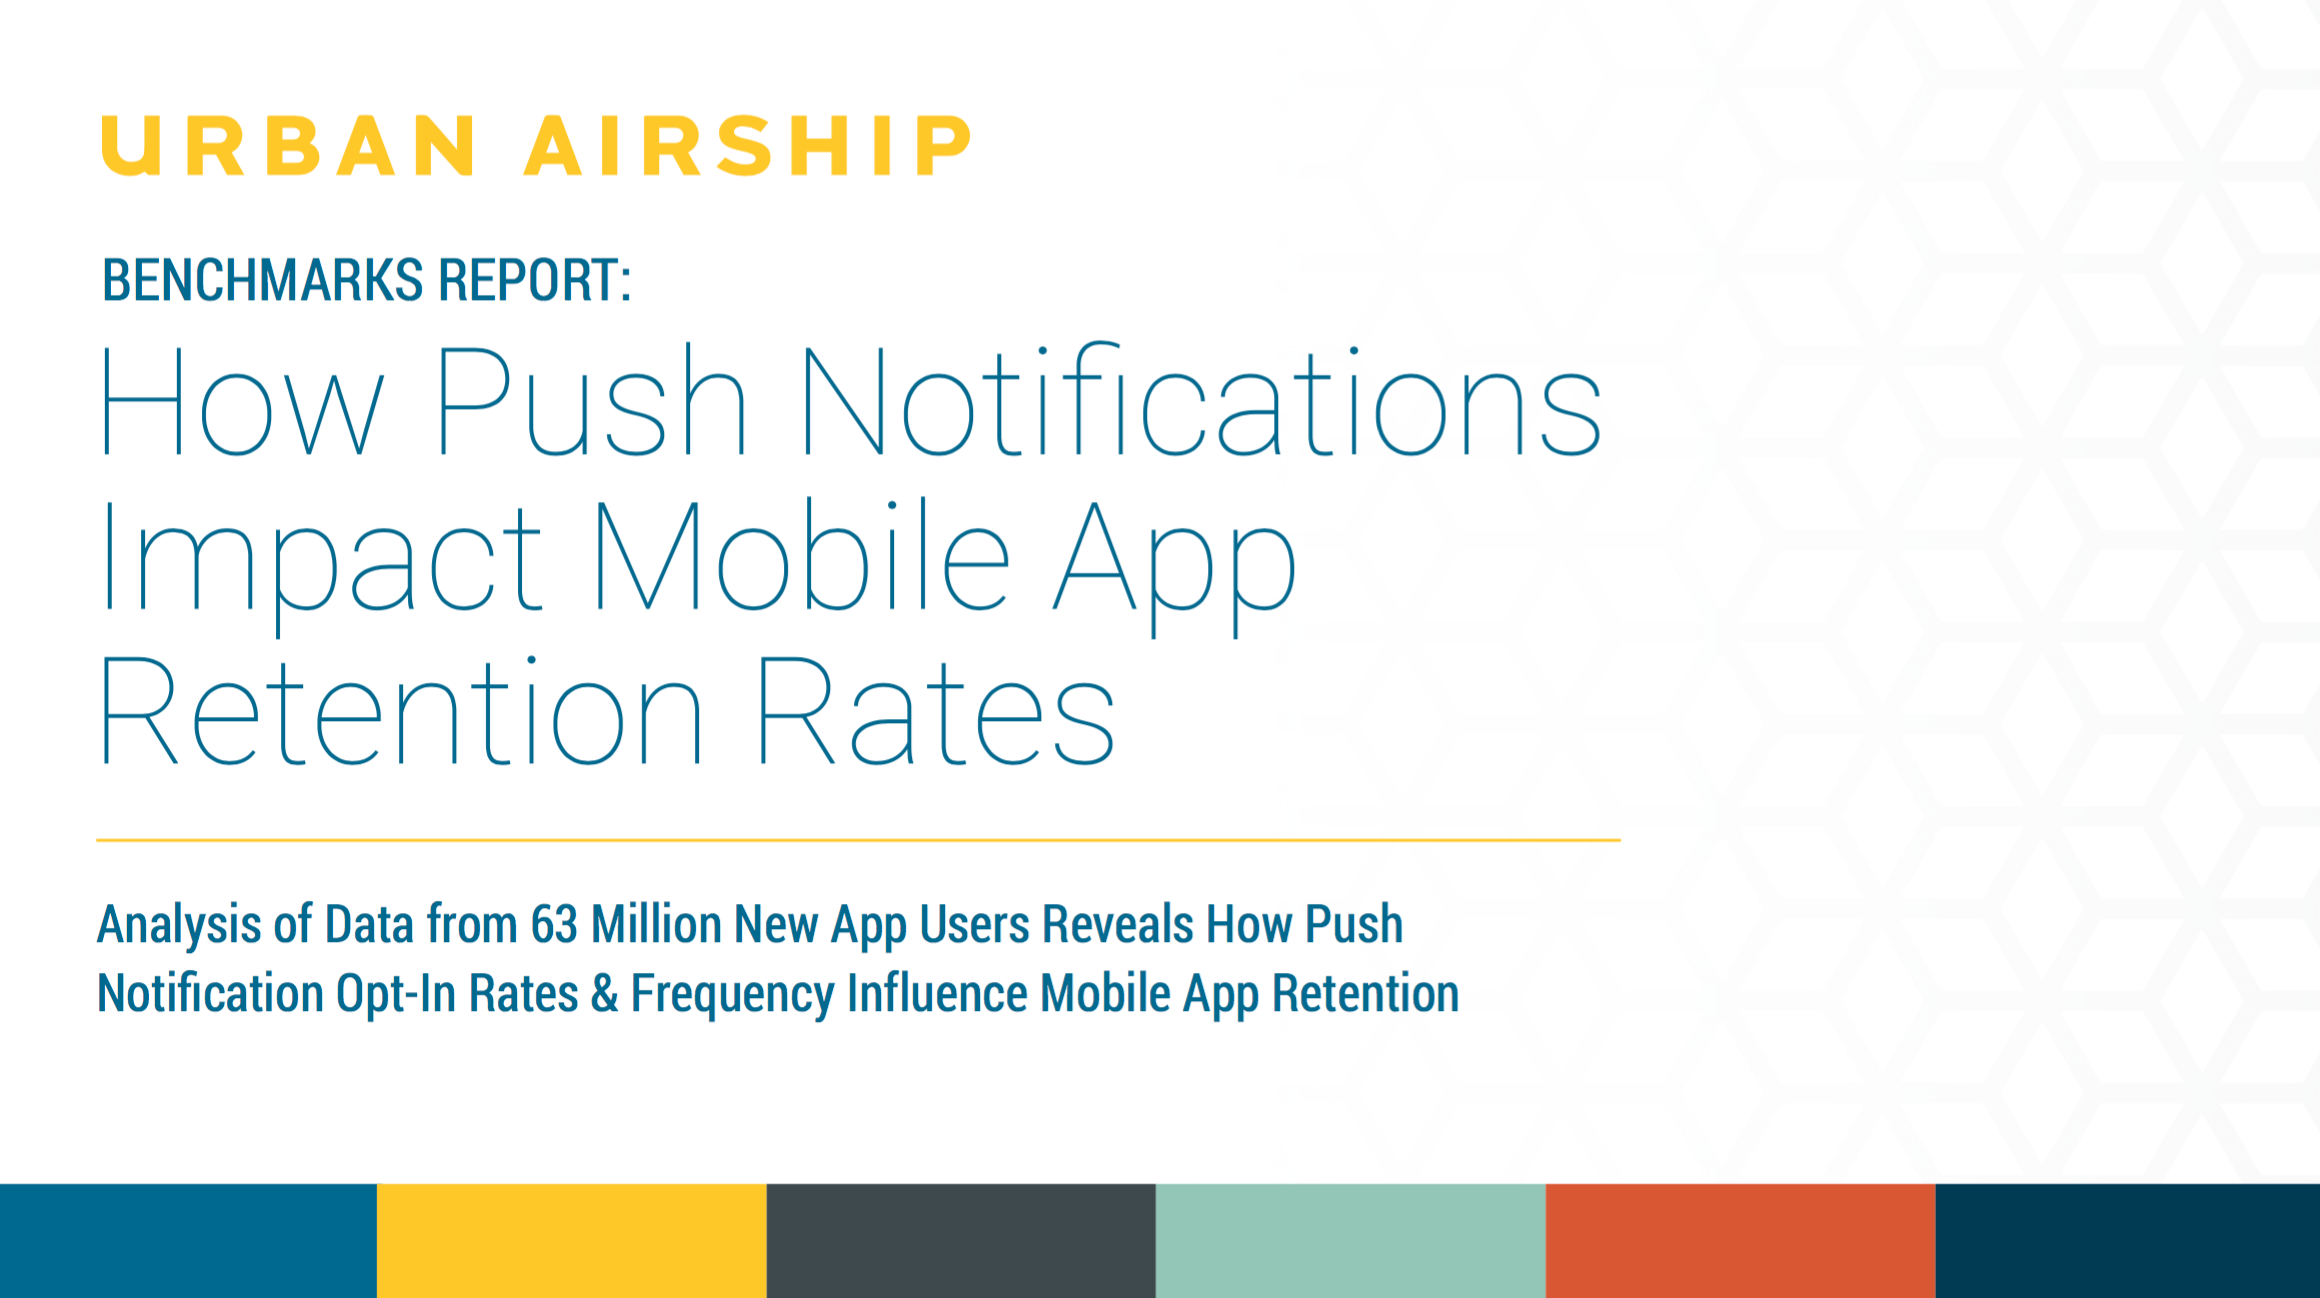 how-push-notifications-impact-mobile-app-retention-rates-benchmark-report-cover